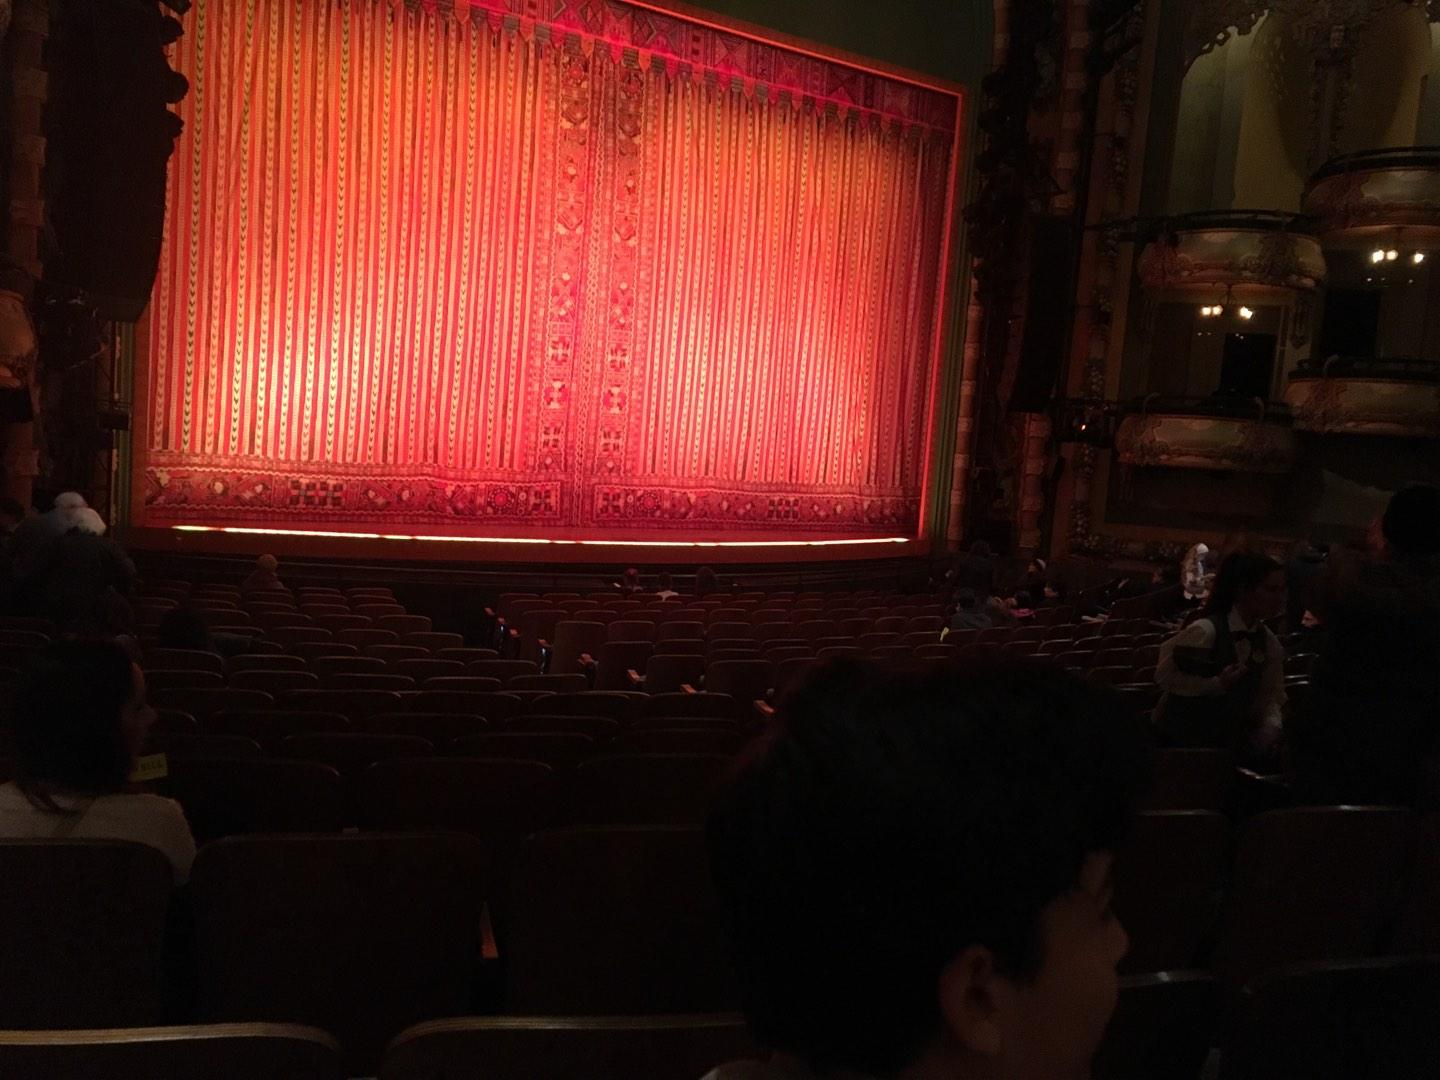 New Amsterdam Theatre Section Orchestra L Row R Seat 11